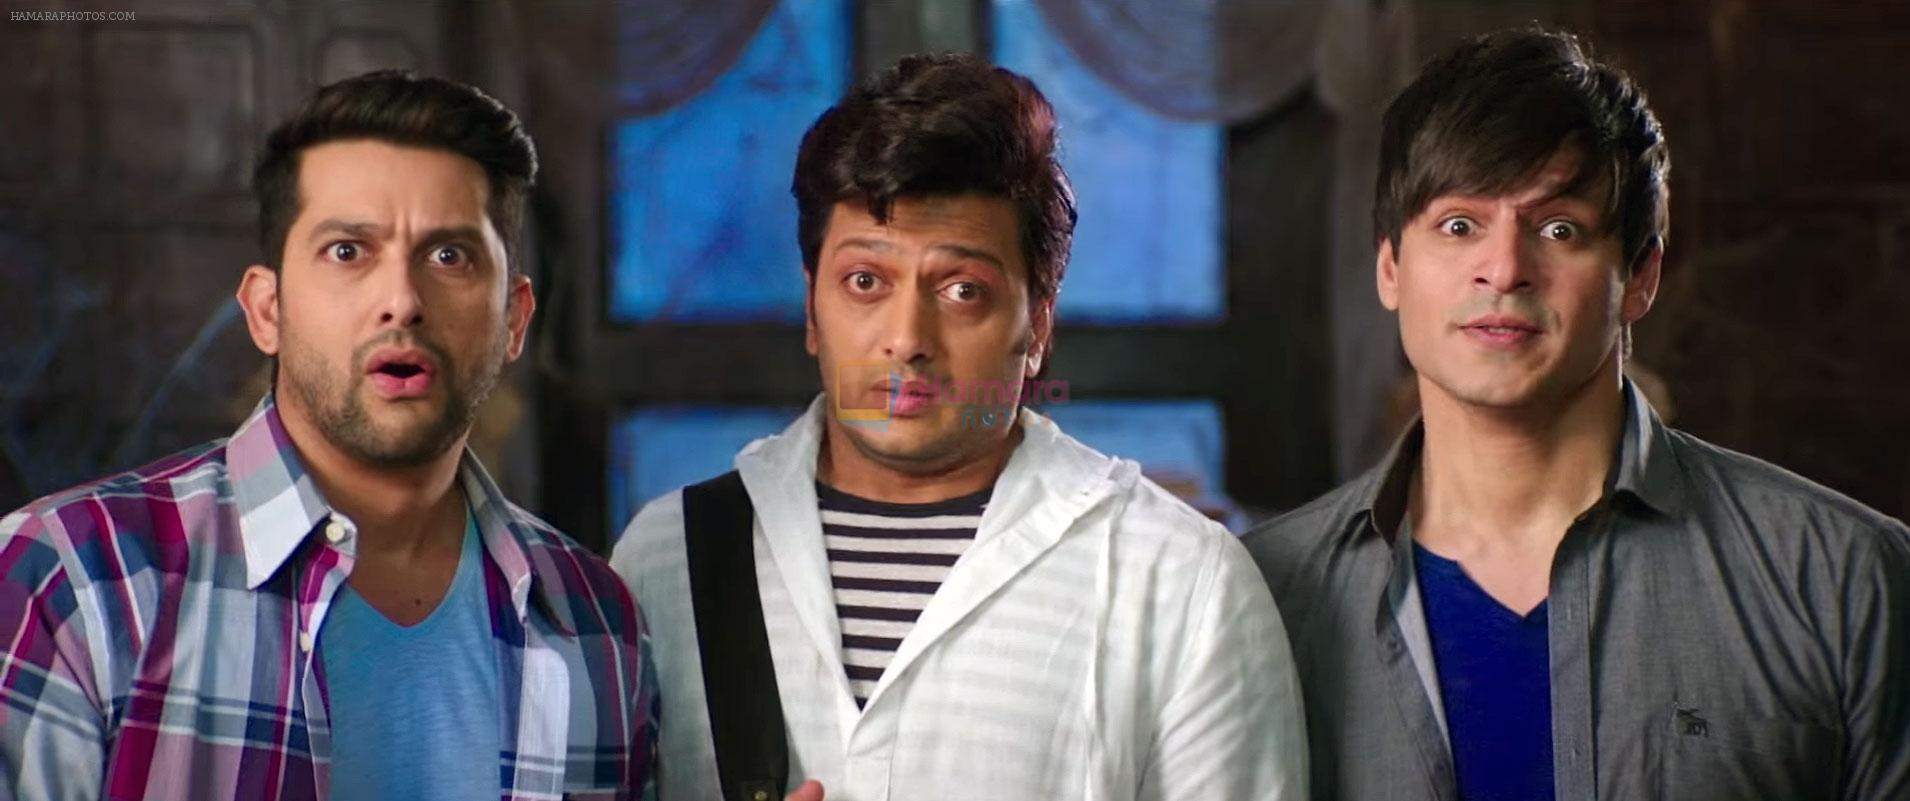 Vivek Oberoi, Ritesh Deshmukh, Aftab Shivdasani in Great Grand Masti Movie Still